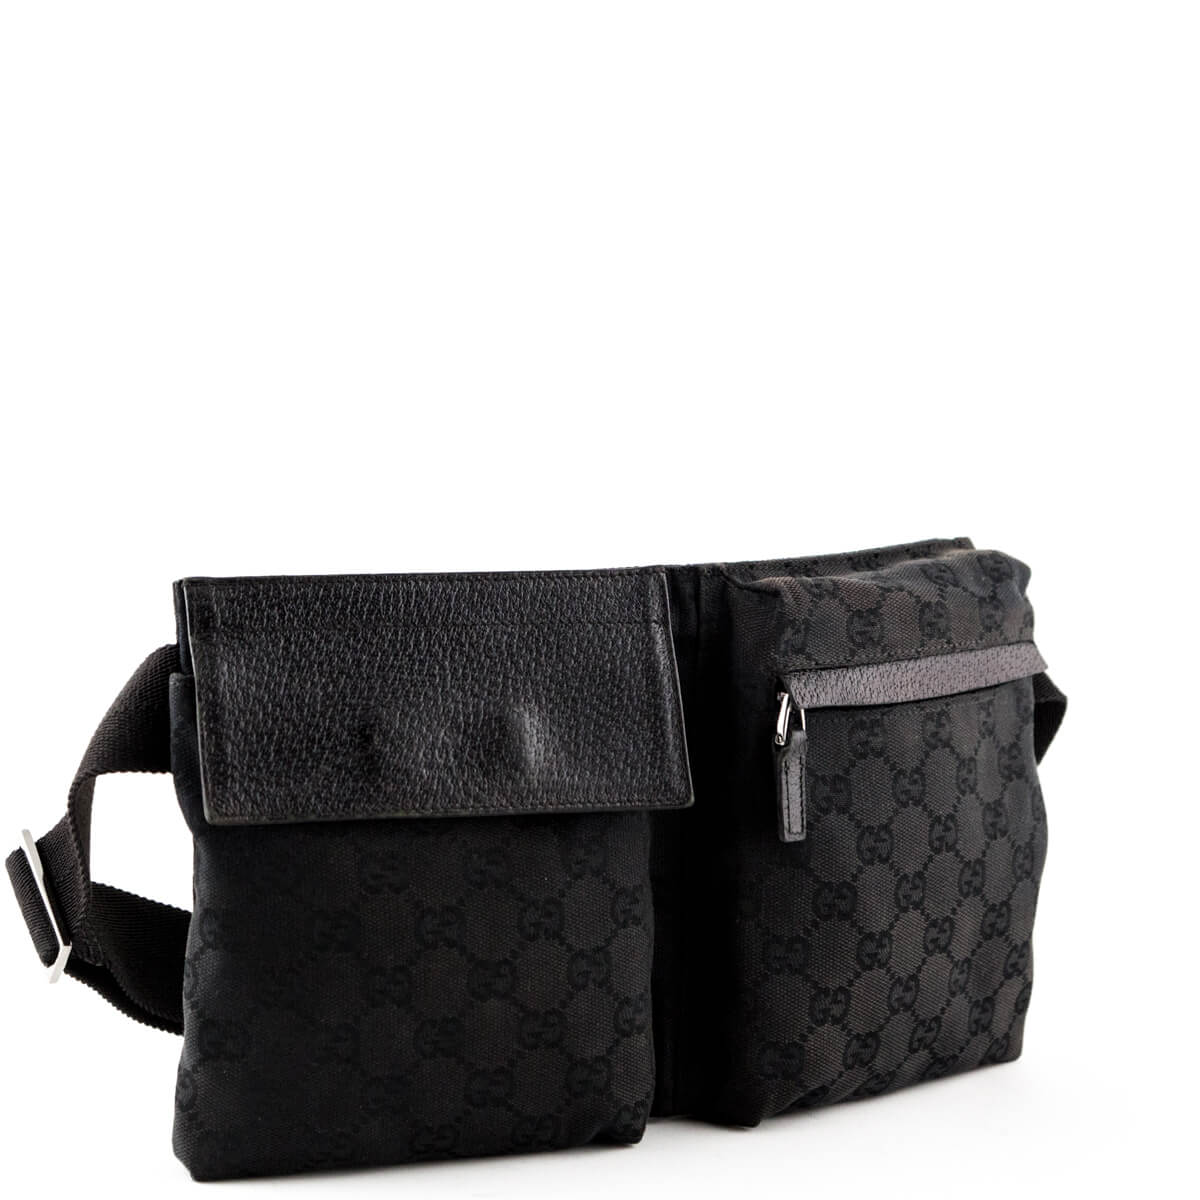 083f97345af64f ... Gucci Black Canvas Original GG Belt Bag - LOVE that BAG - Preowned  Authentic Designer Handbags ...